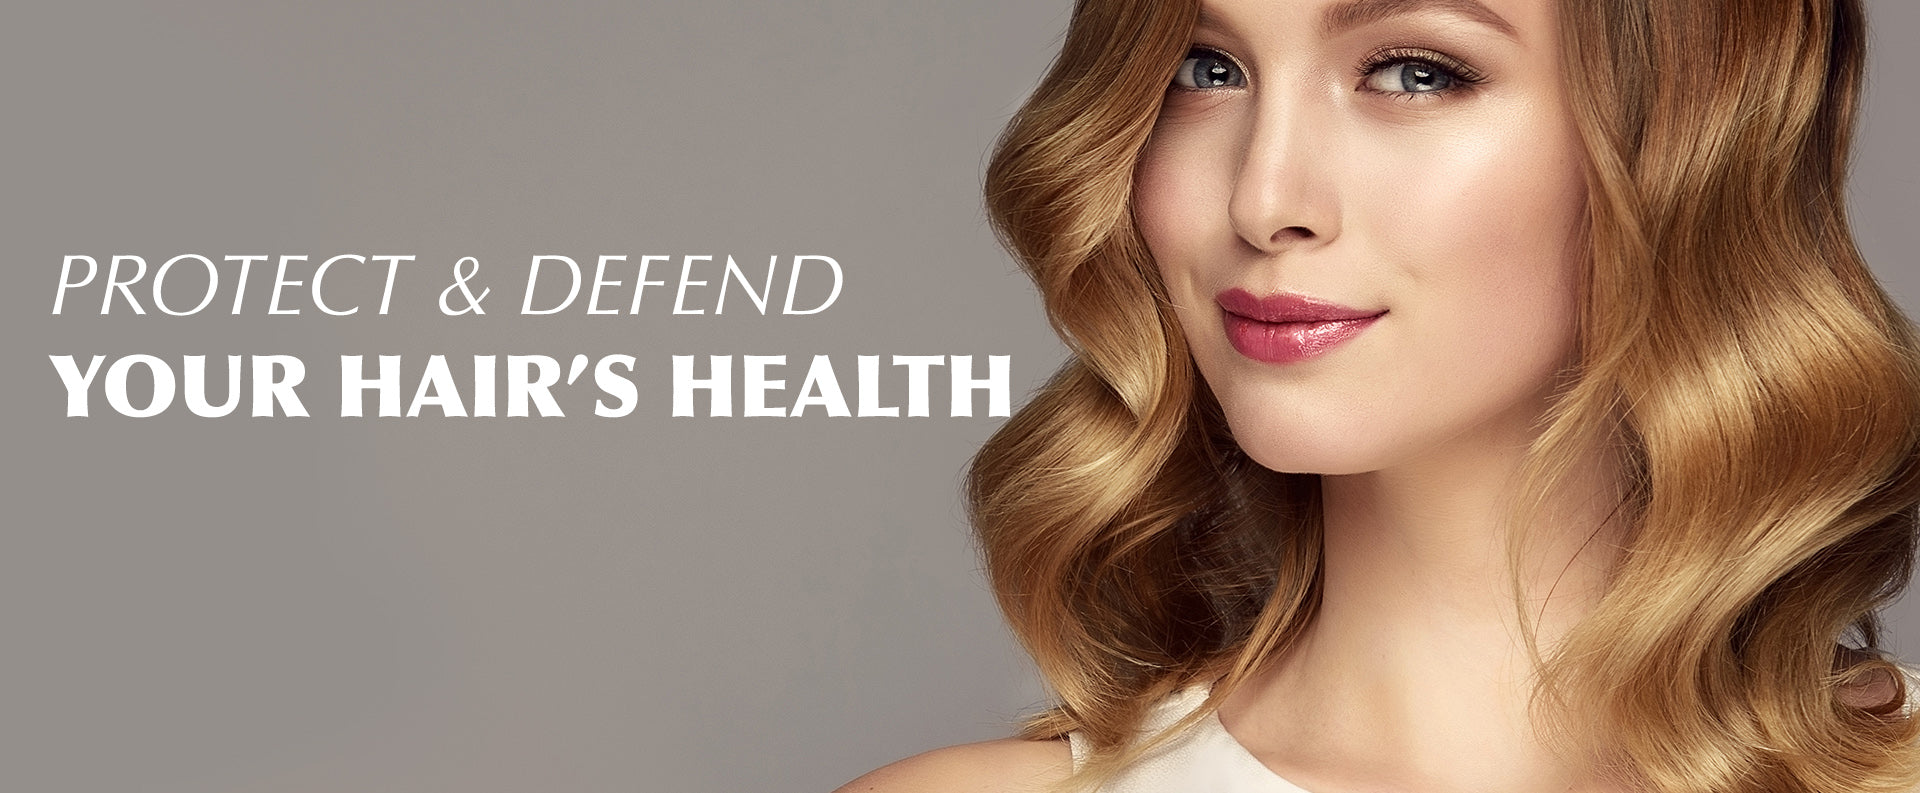 Protect and defend your hair's health